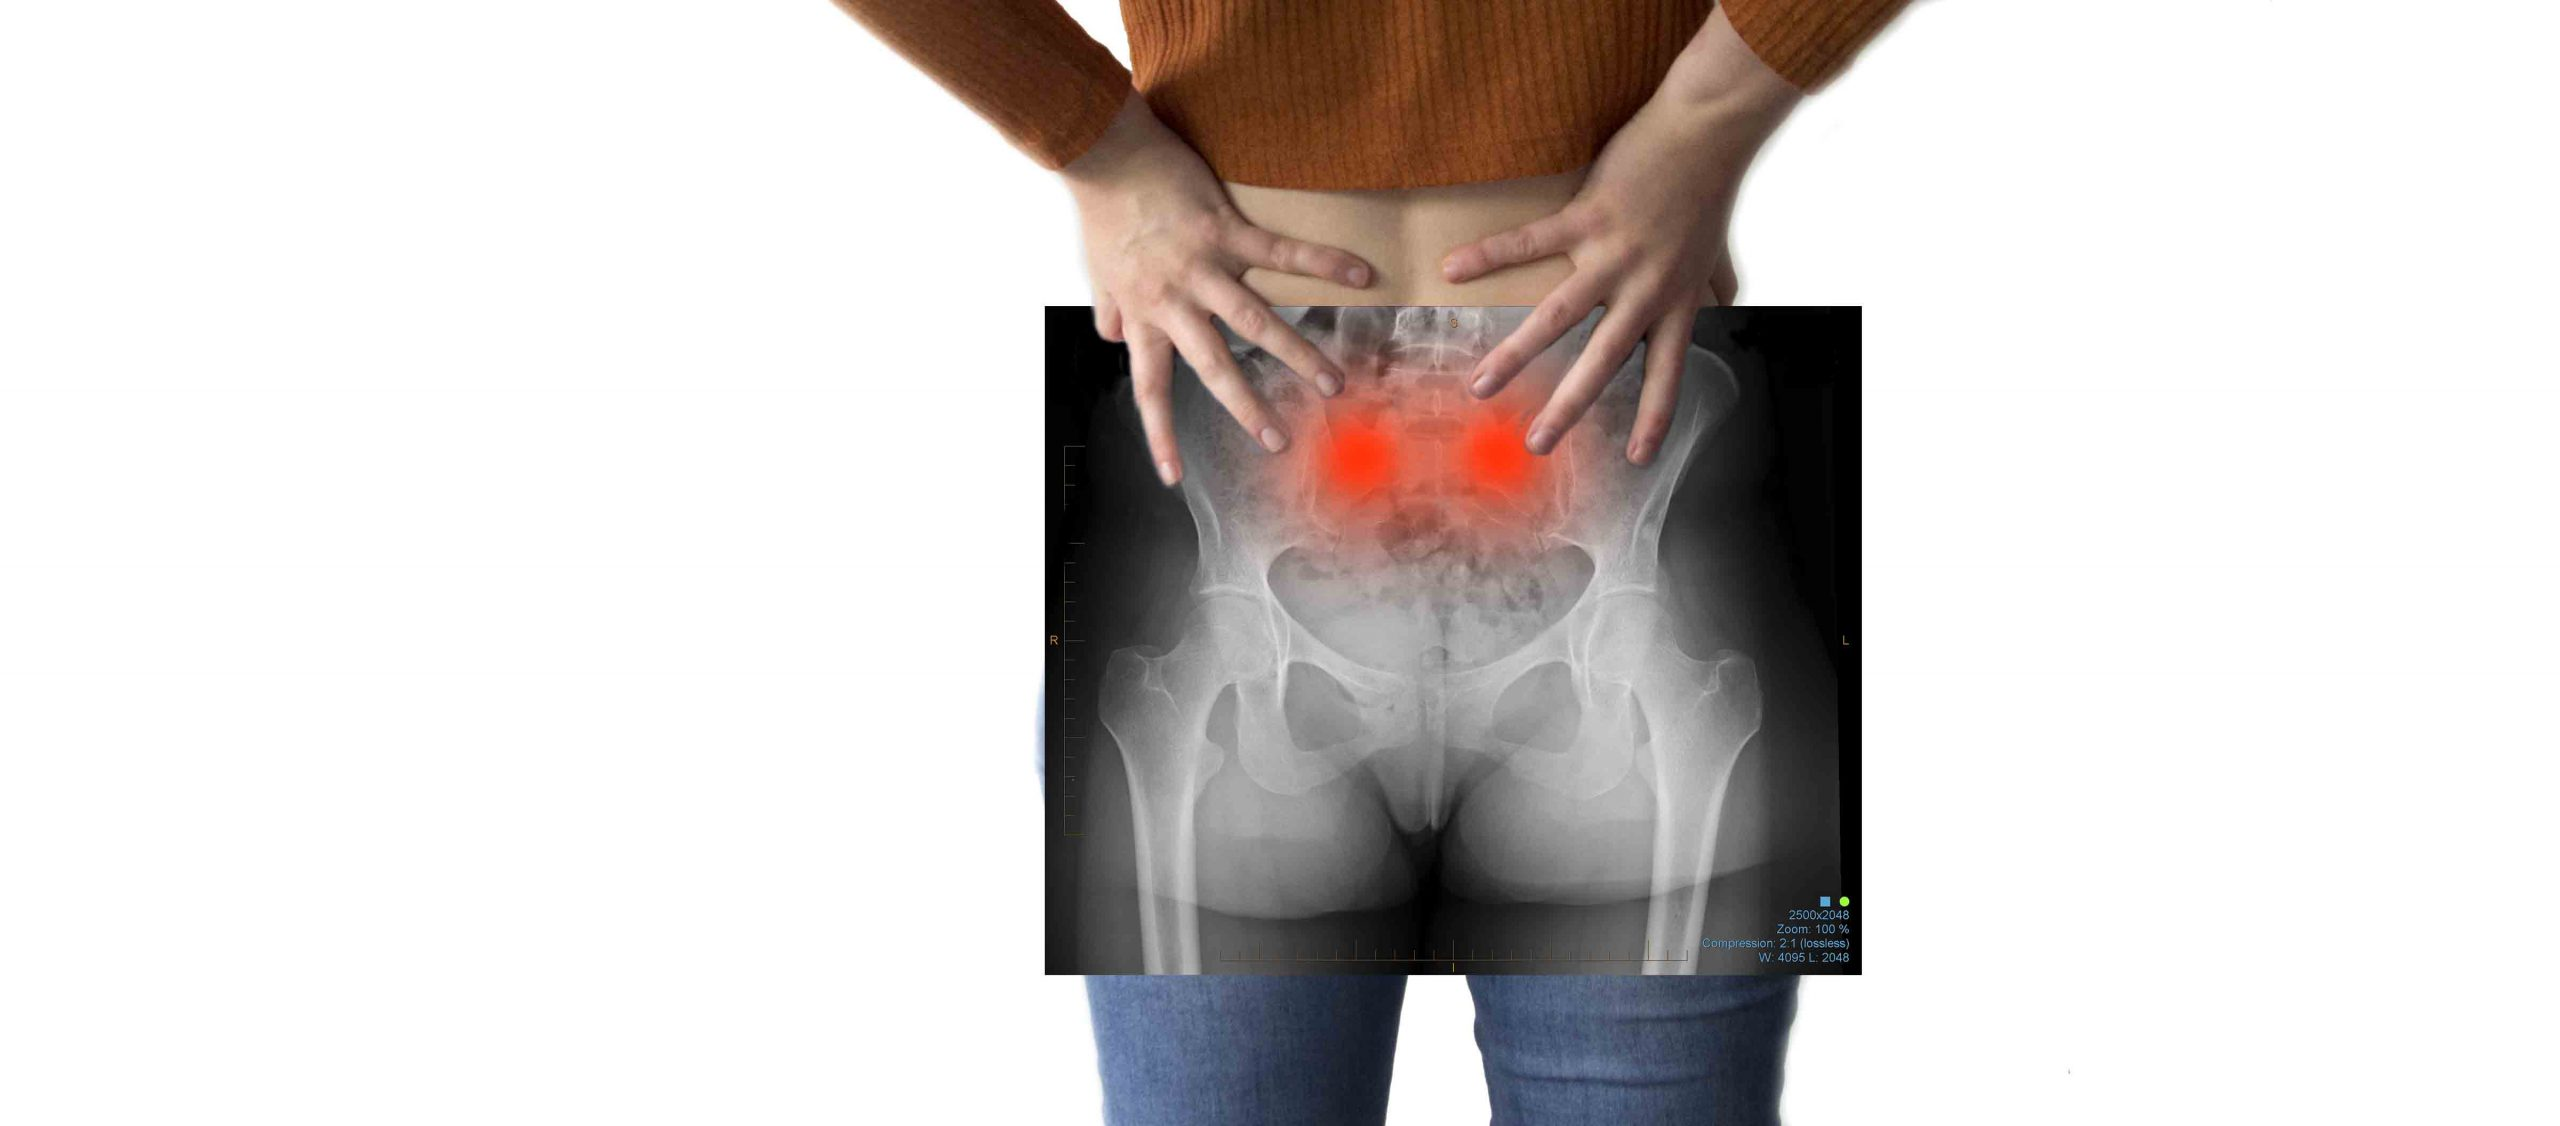 sacroiliac joint pain in pregnancy